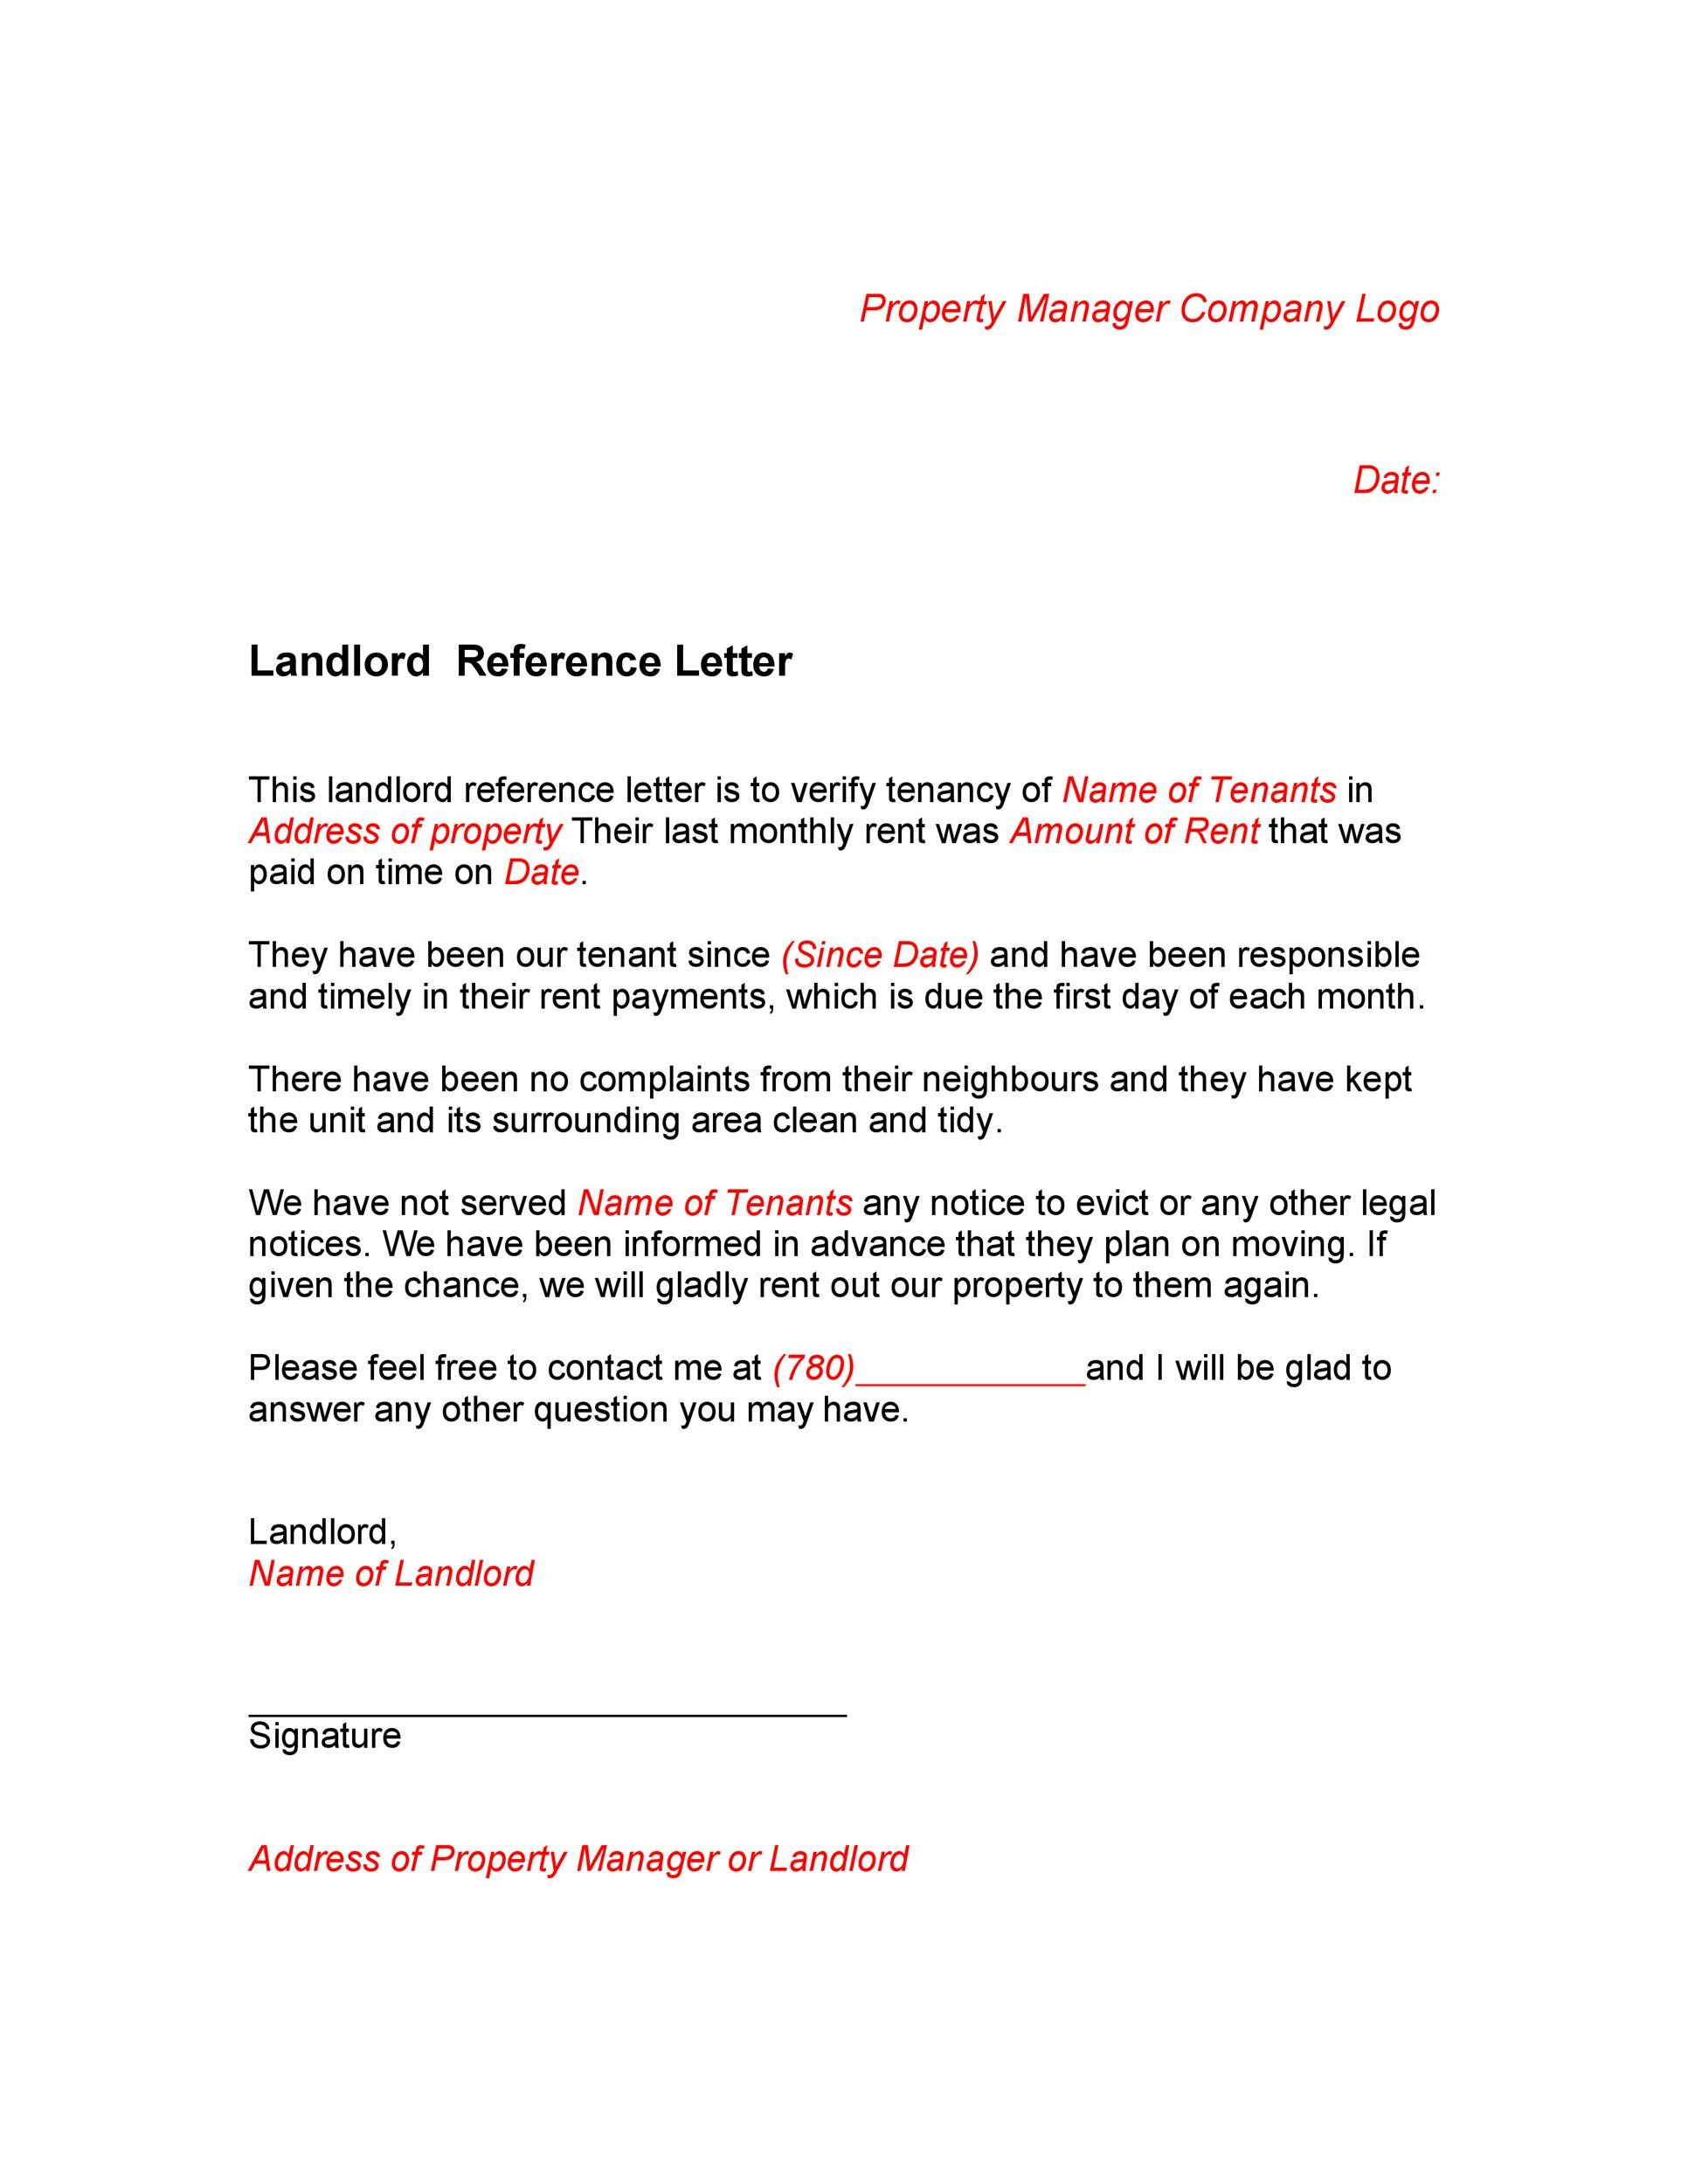 10+ Sample Business Reference Letter Templates – PDF, DOC